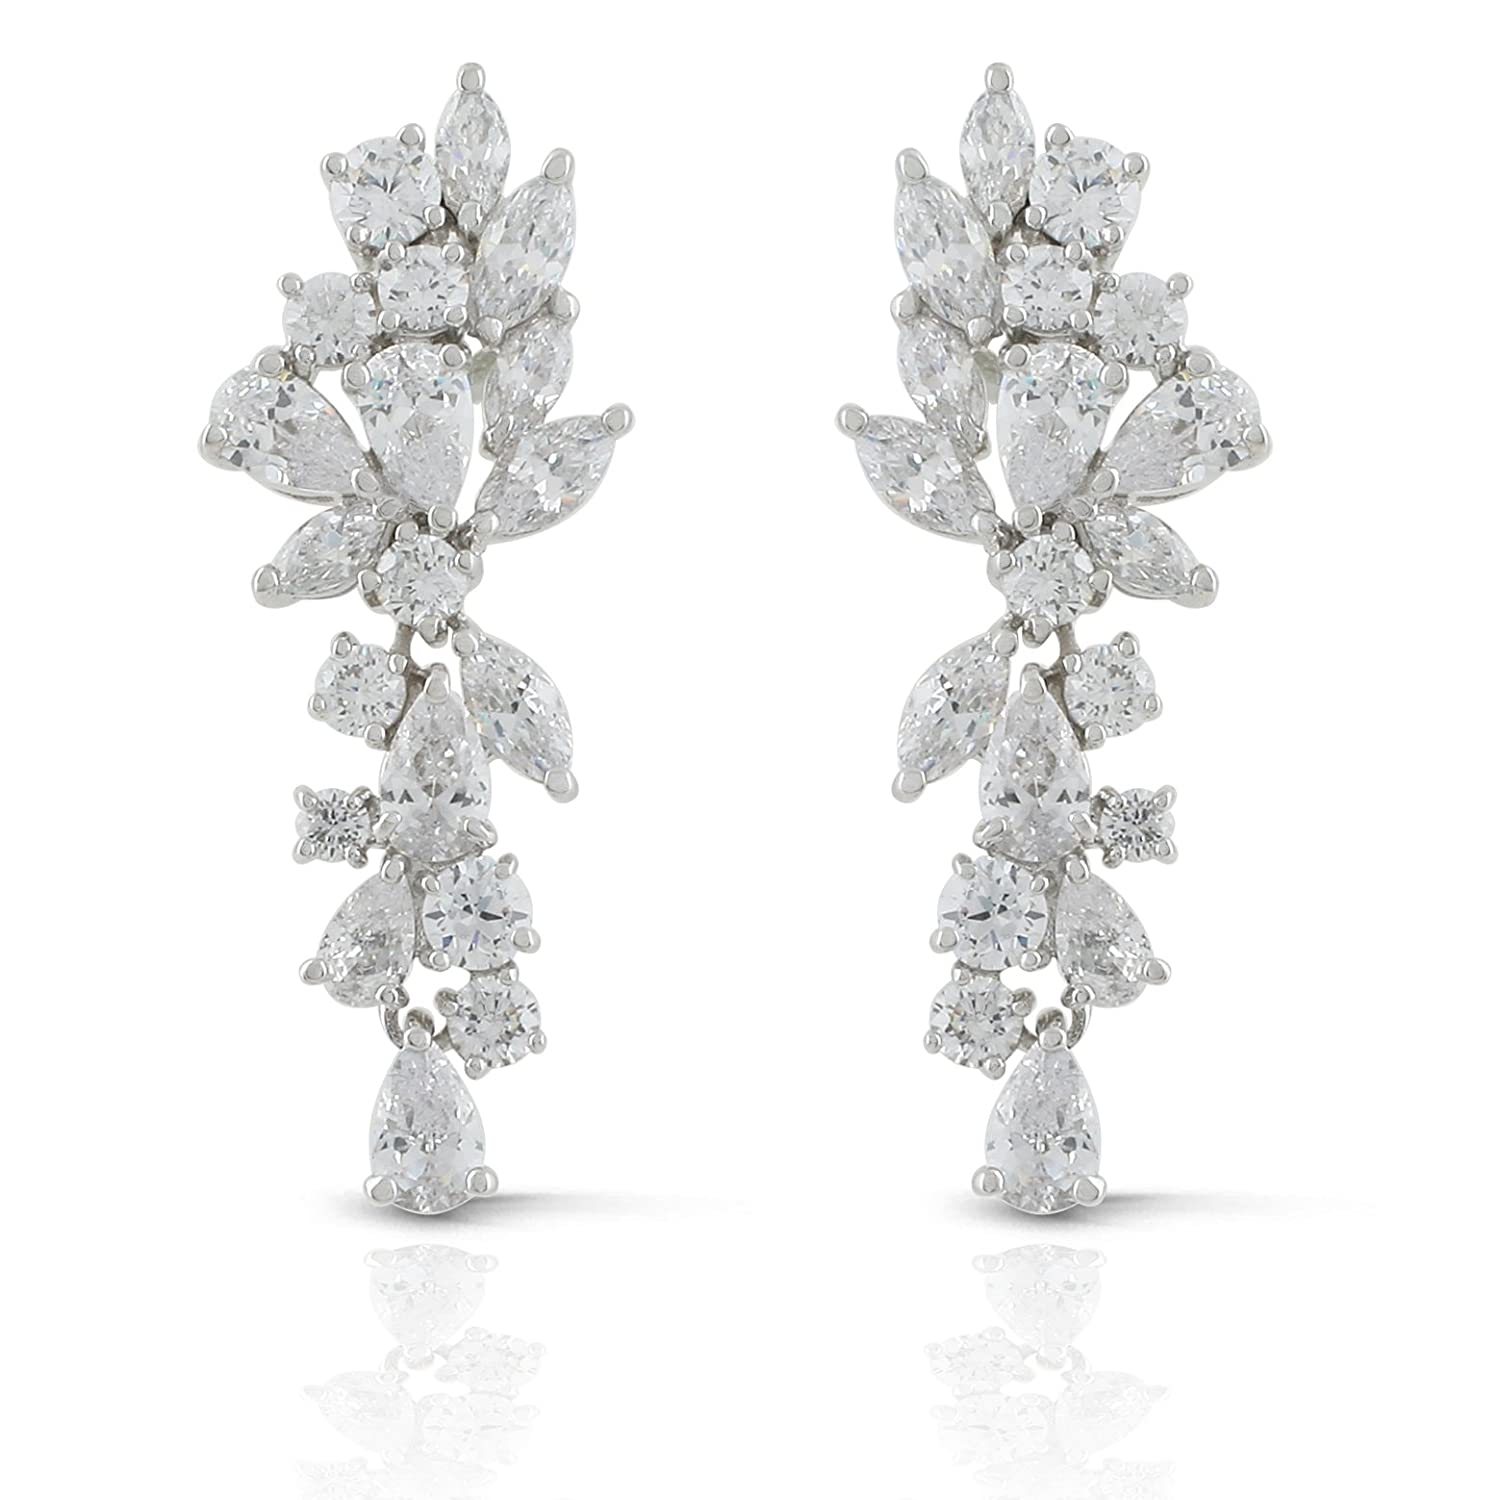 2cc8c737d5a42c Amazon.com: JanKuo Jewelry Rhodium Plated Bridal Floral Leaves Marquise Cubic  Zirconia Chandelier Earrings: Jewelry